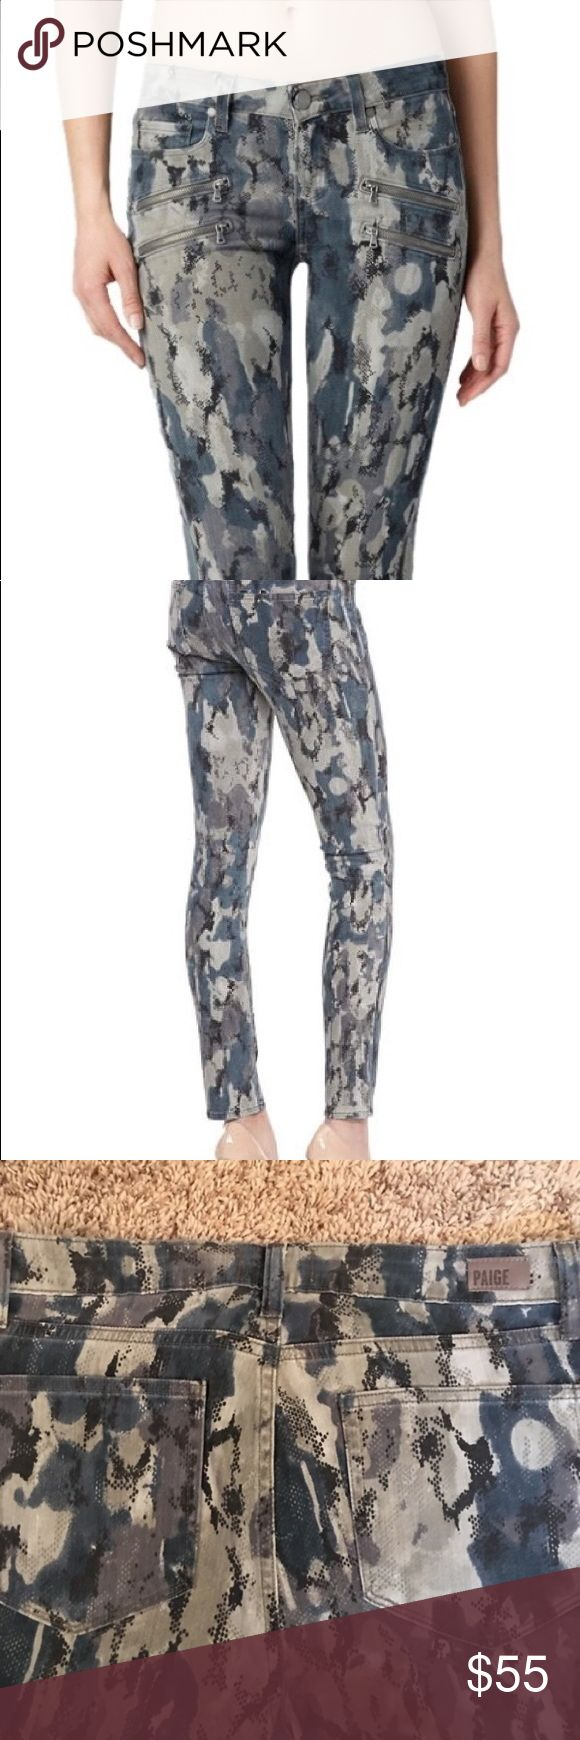 Paige Edgemont camo jeans Camouflage skinny jeans PAIGE Jeans Skinny